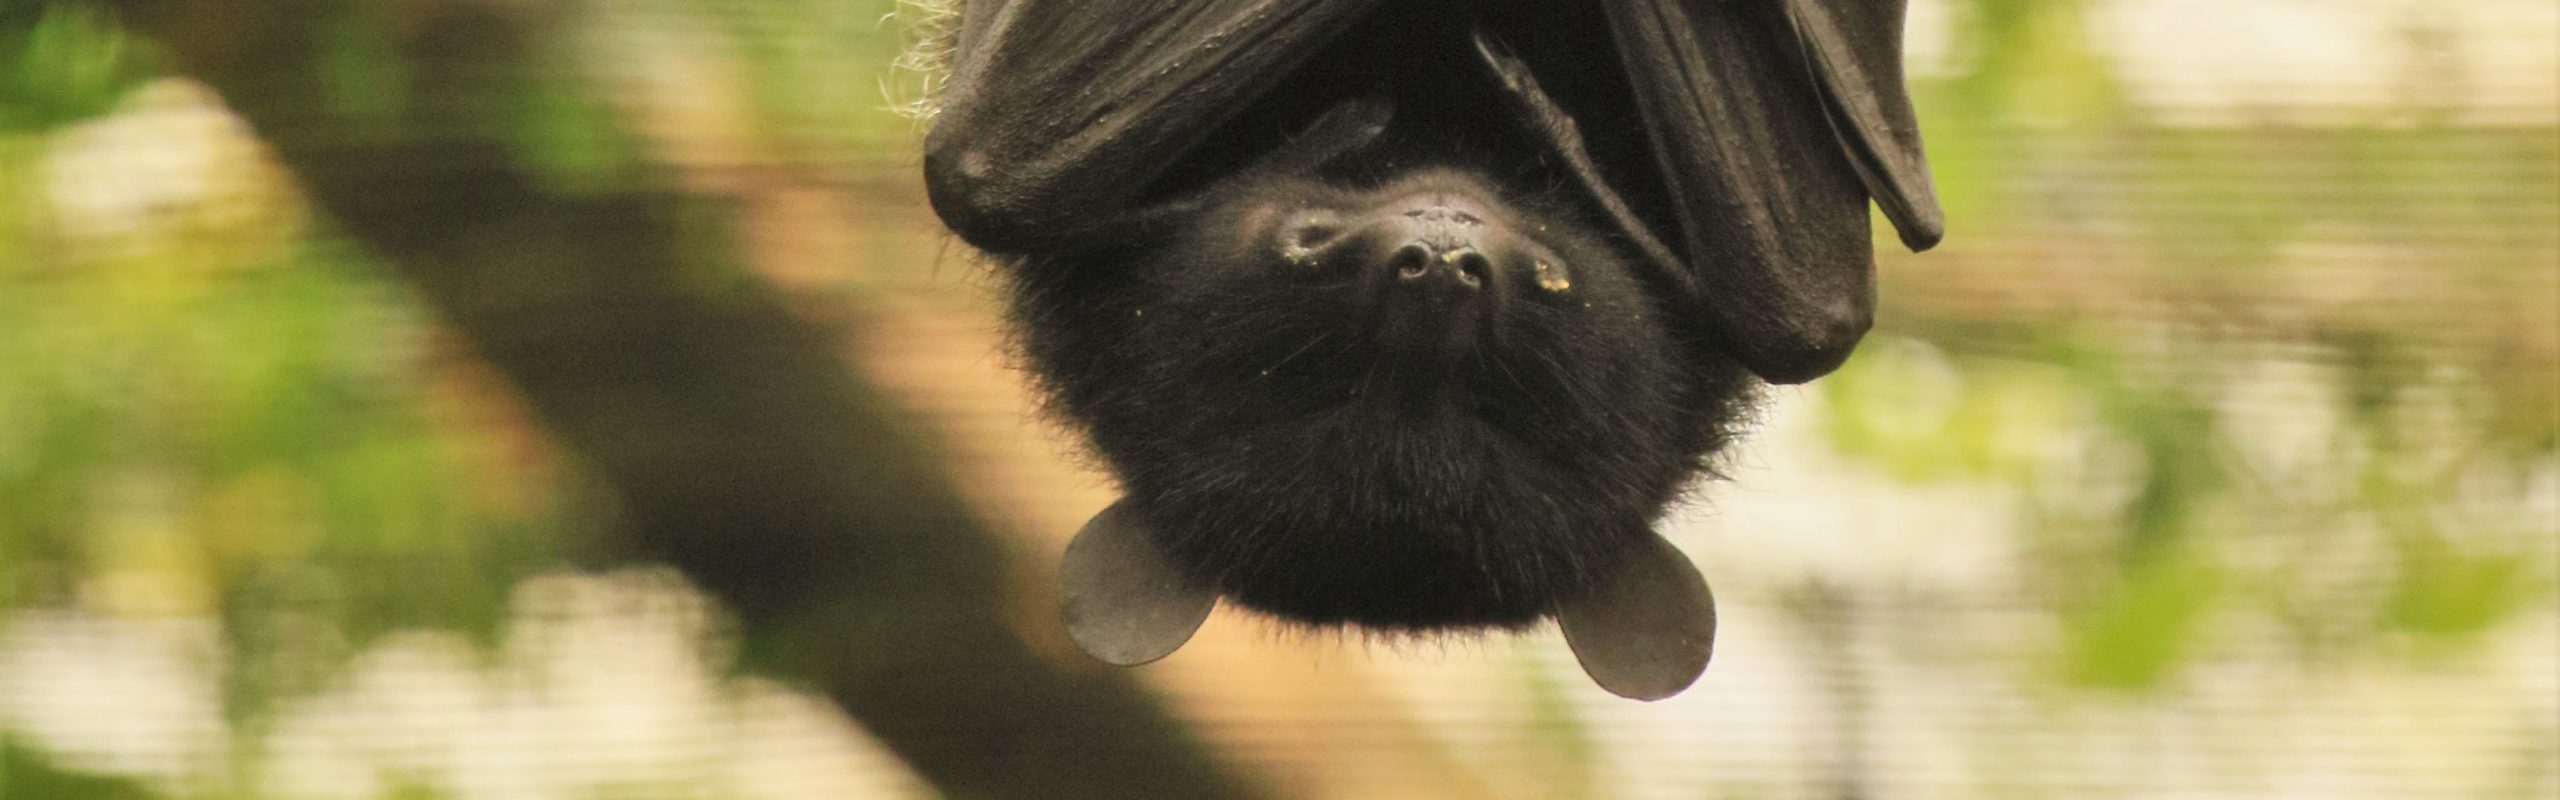 Livingstone's Flying Fox